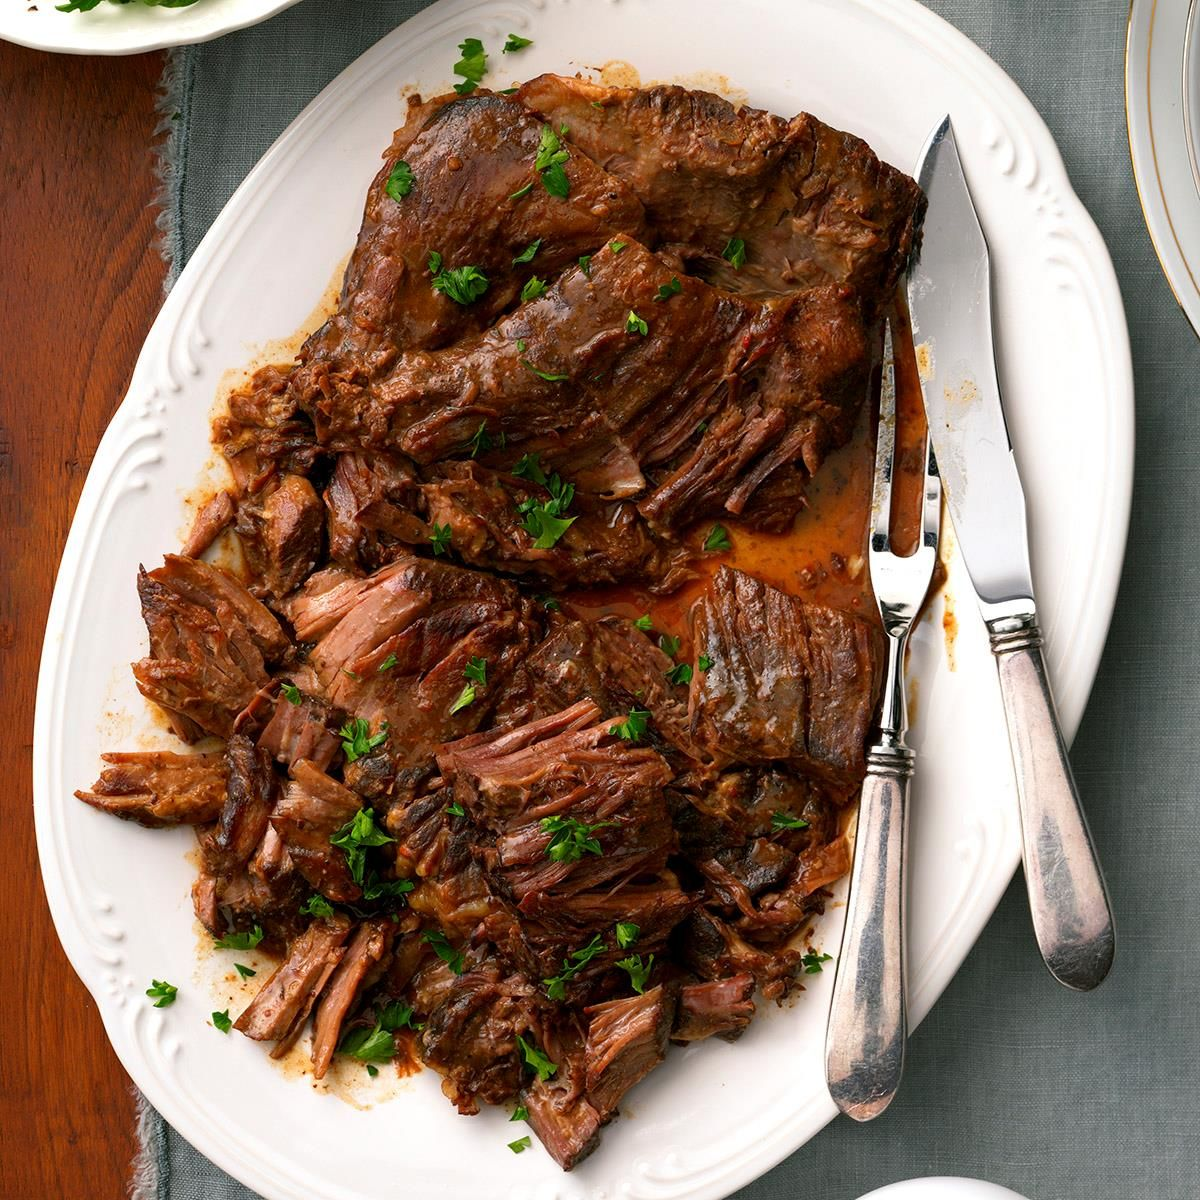 Flavorful Pot Roast Recipe Pot Roast Recipes Roast Recipes Recipes